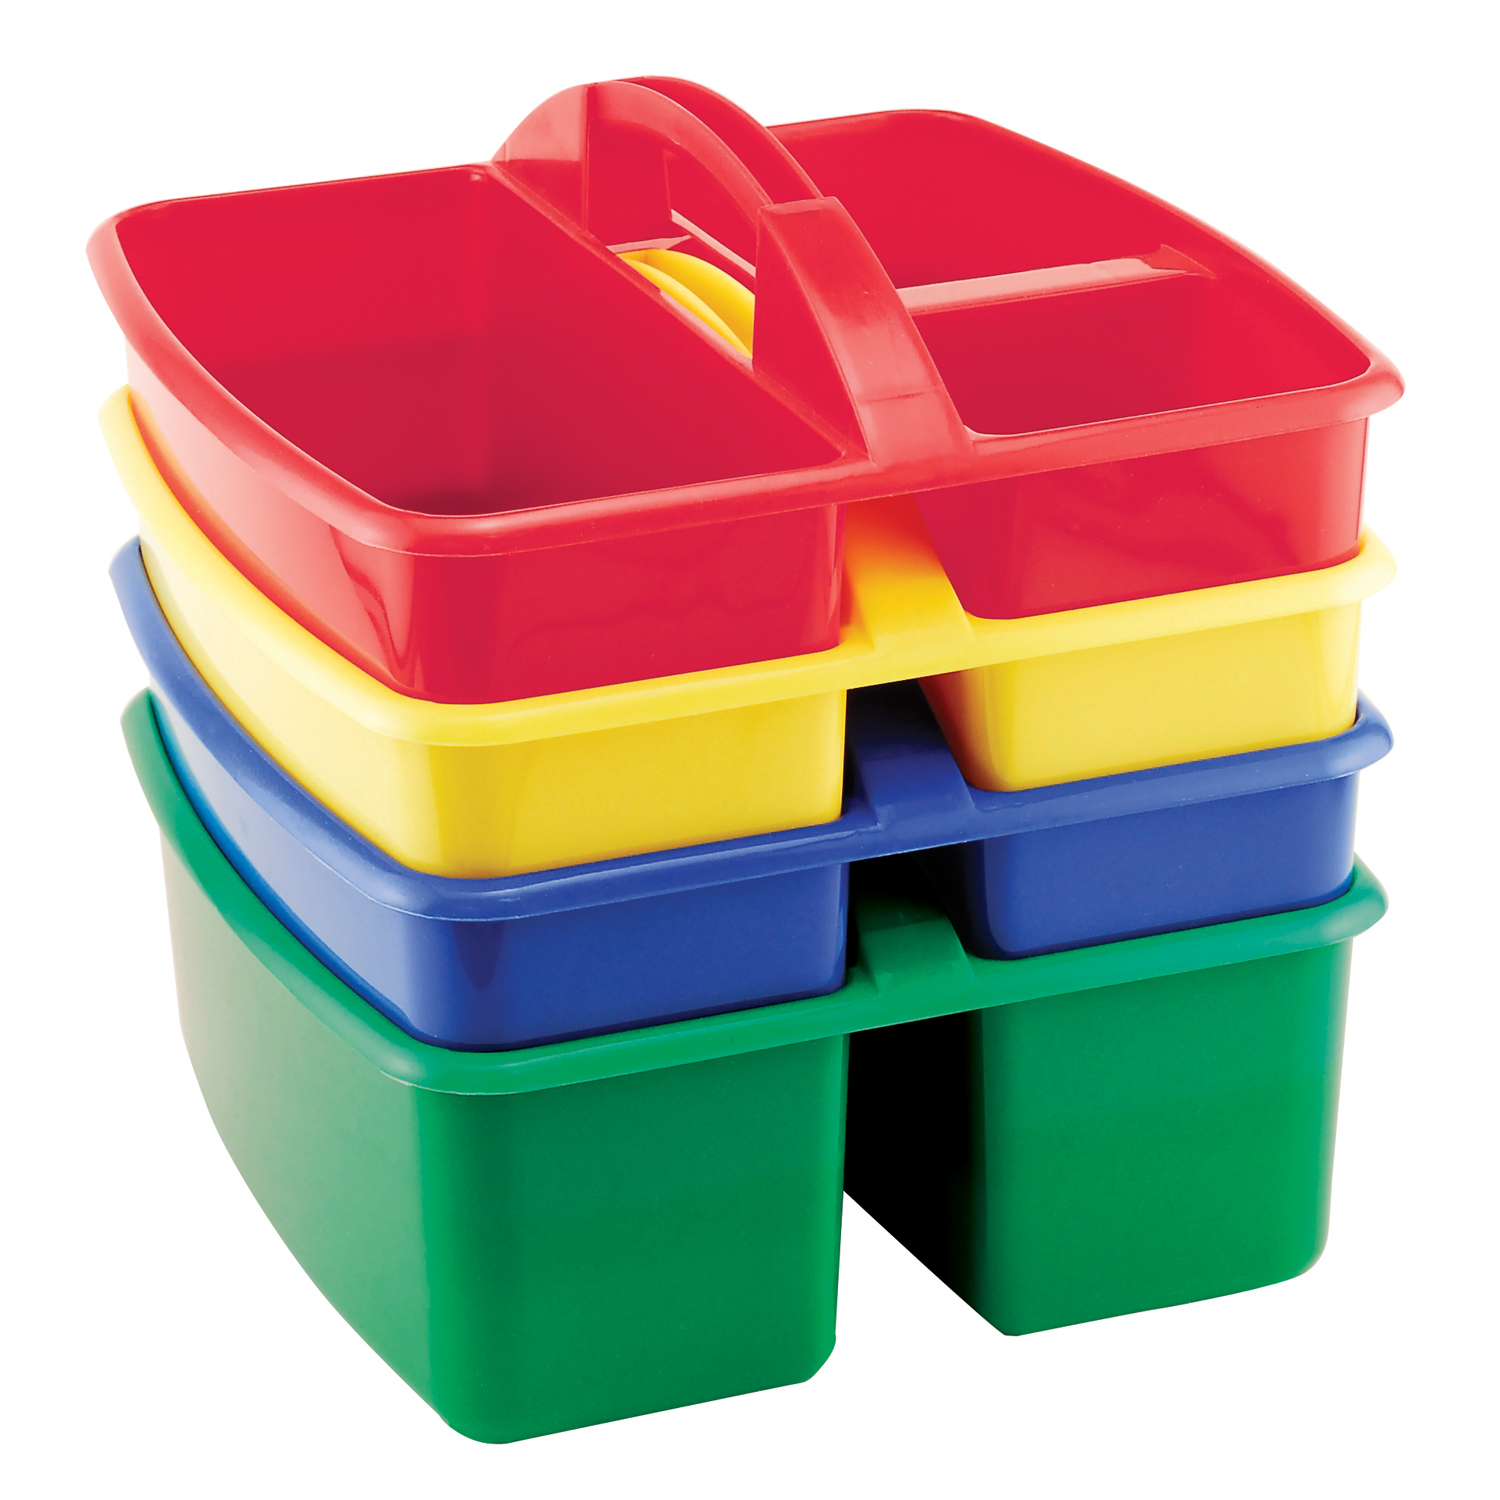 Ecr4kids 4 Piece Small Art Caddy Assorted 3 Pack